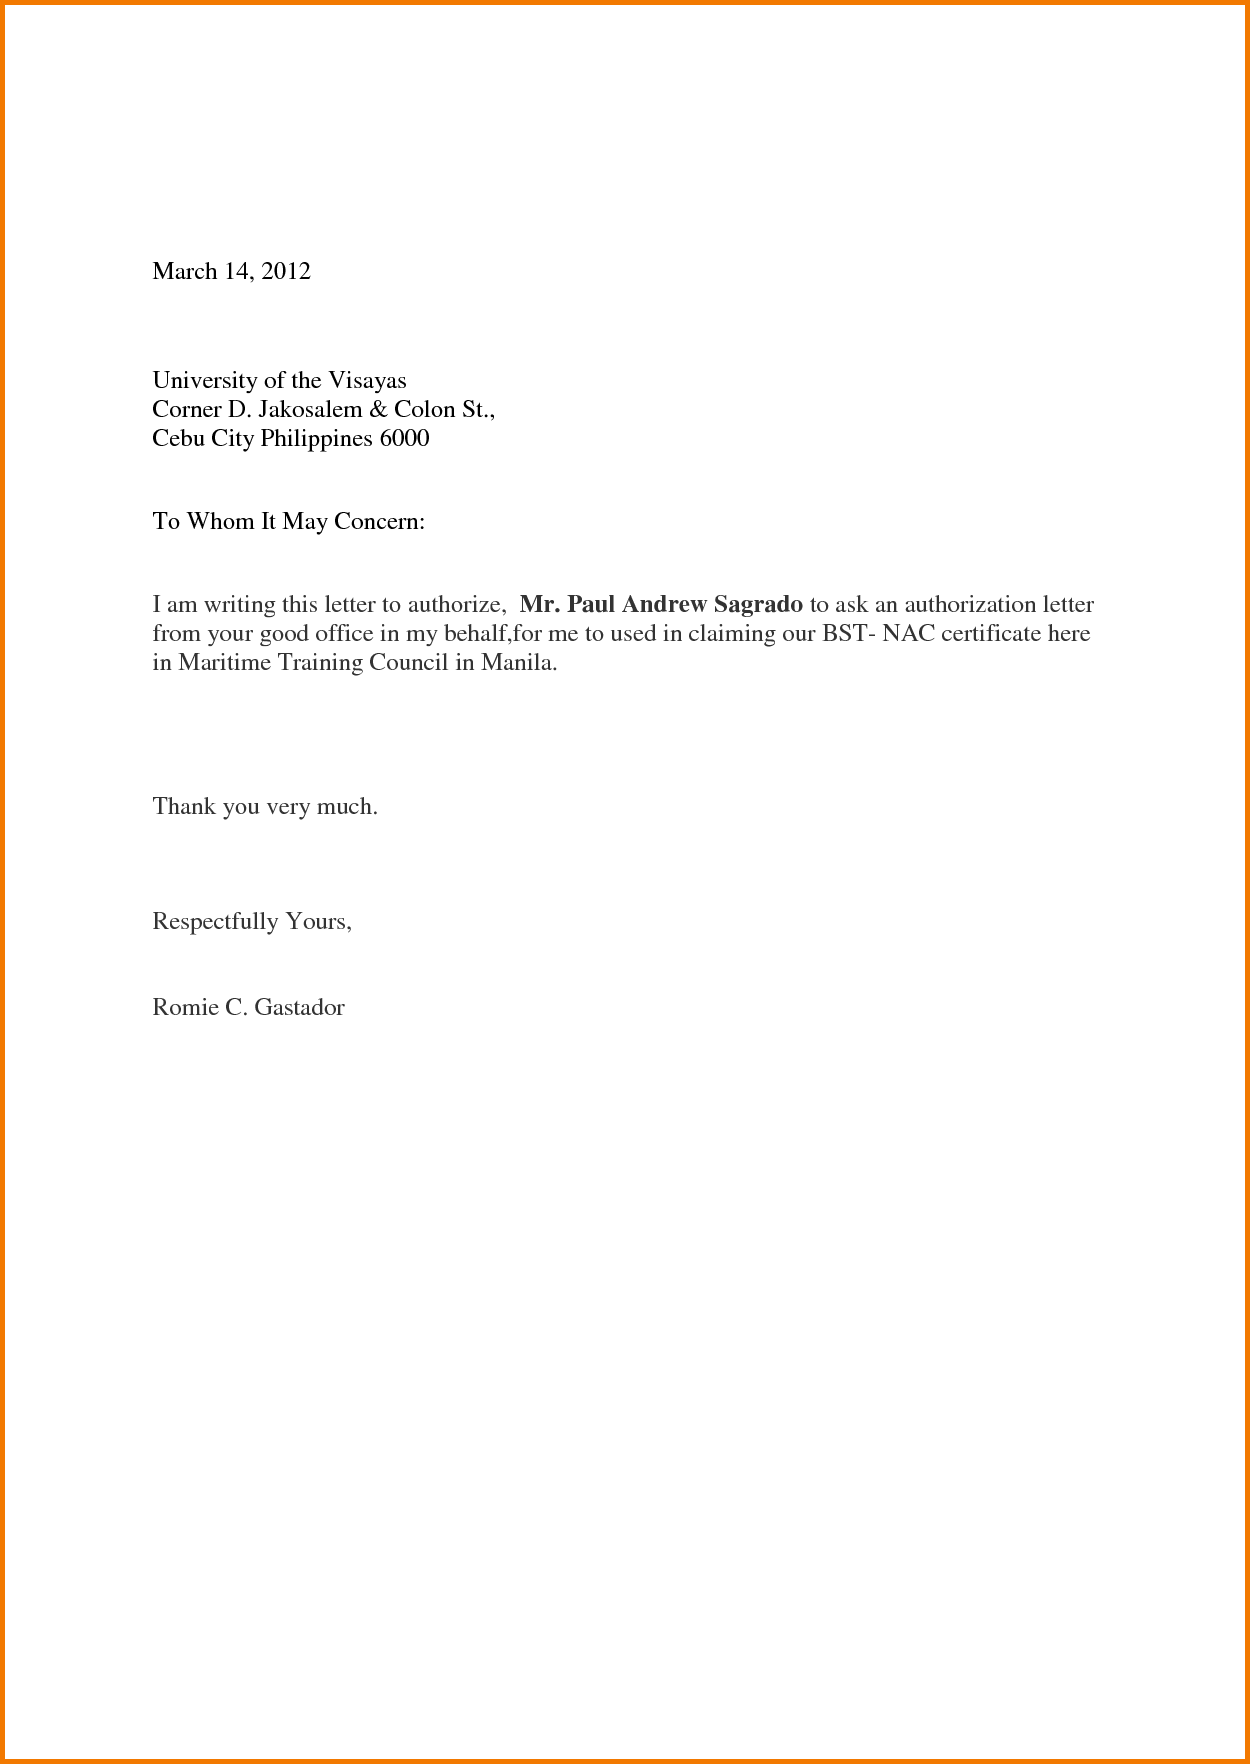 Simple Authorization Letter Sample to Act on Behalf | school